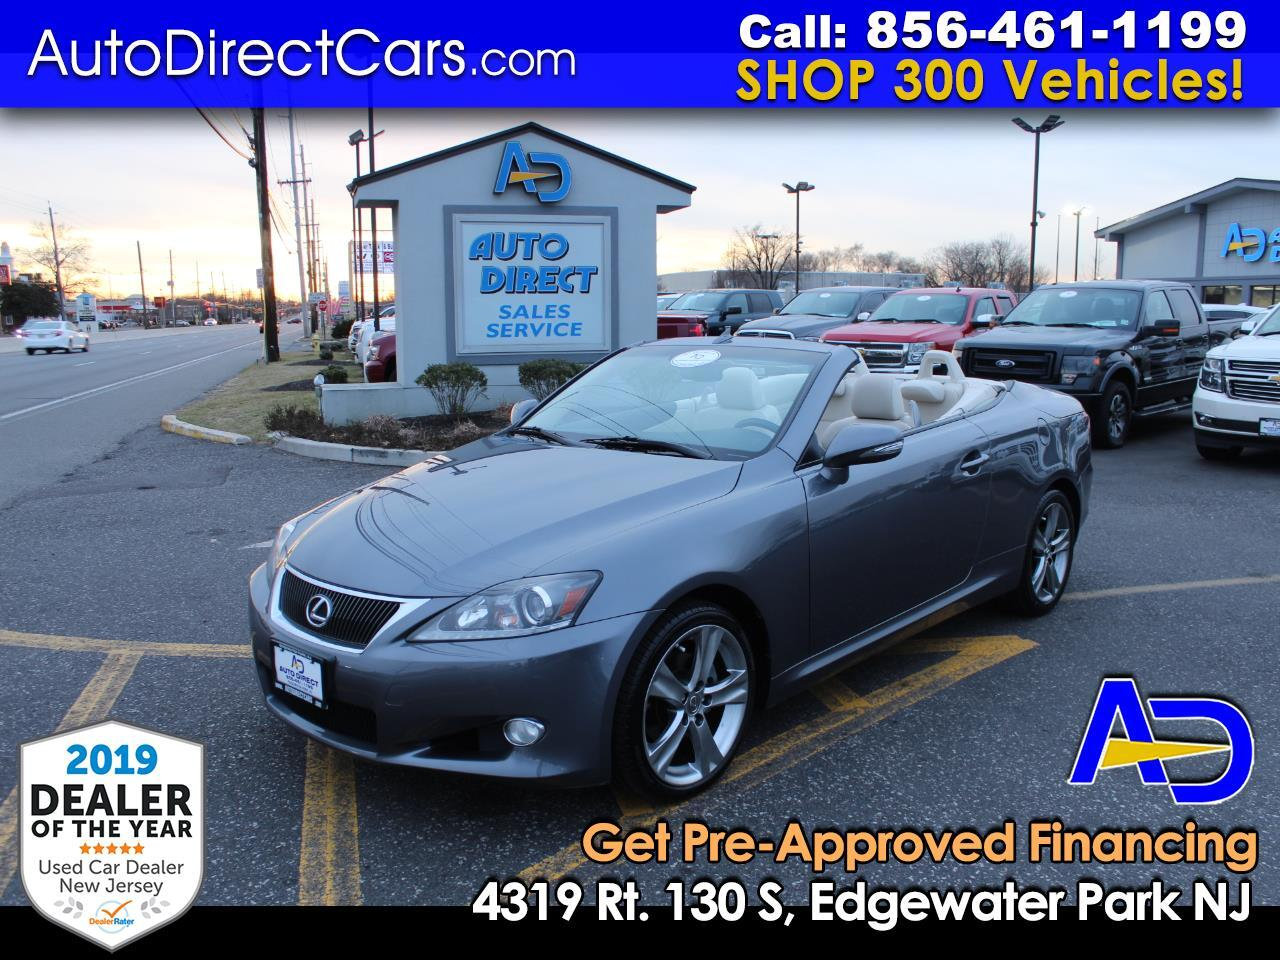 2012 Lexus IS 250C 2dr Conv Auto